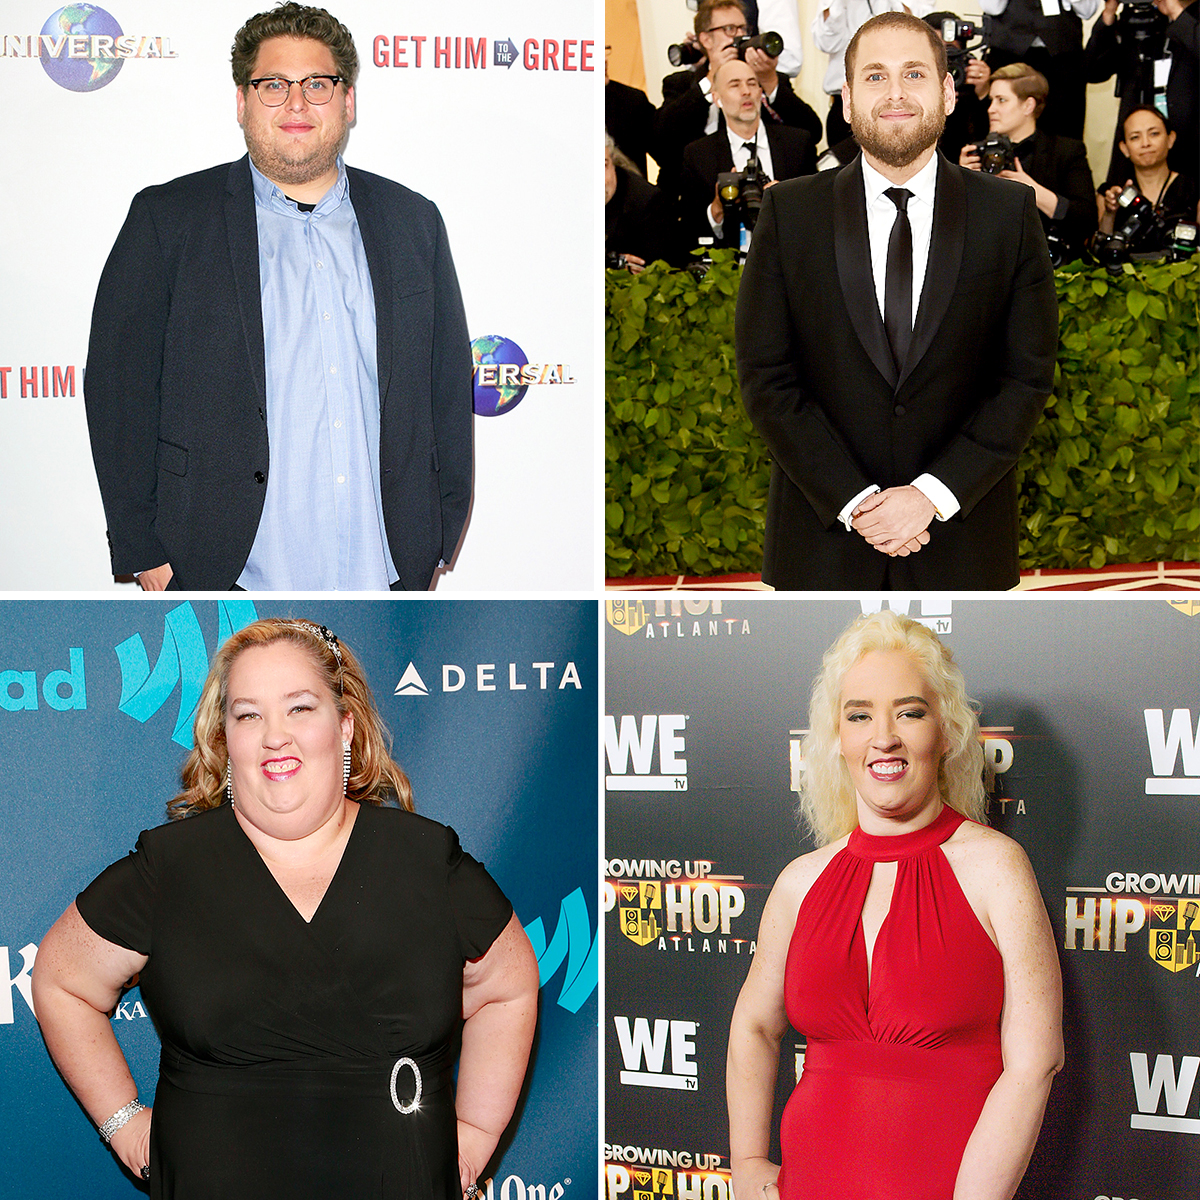 movie about fat guy who loses weight